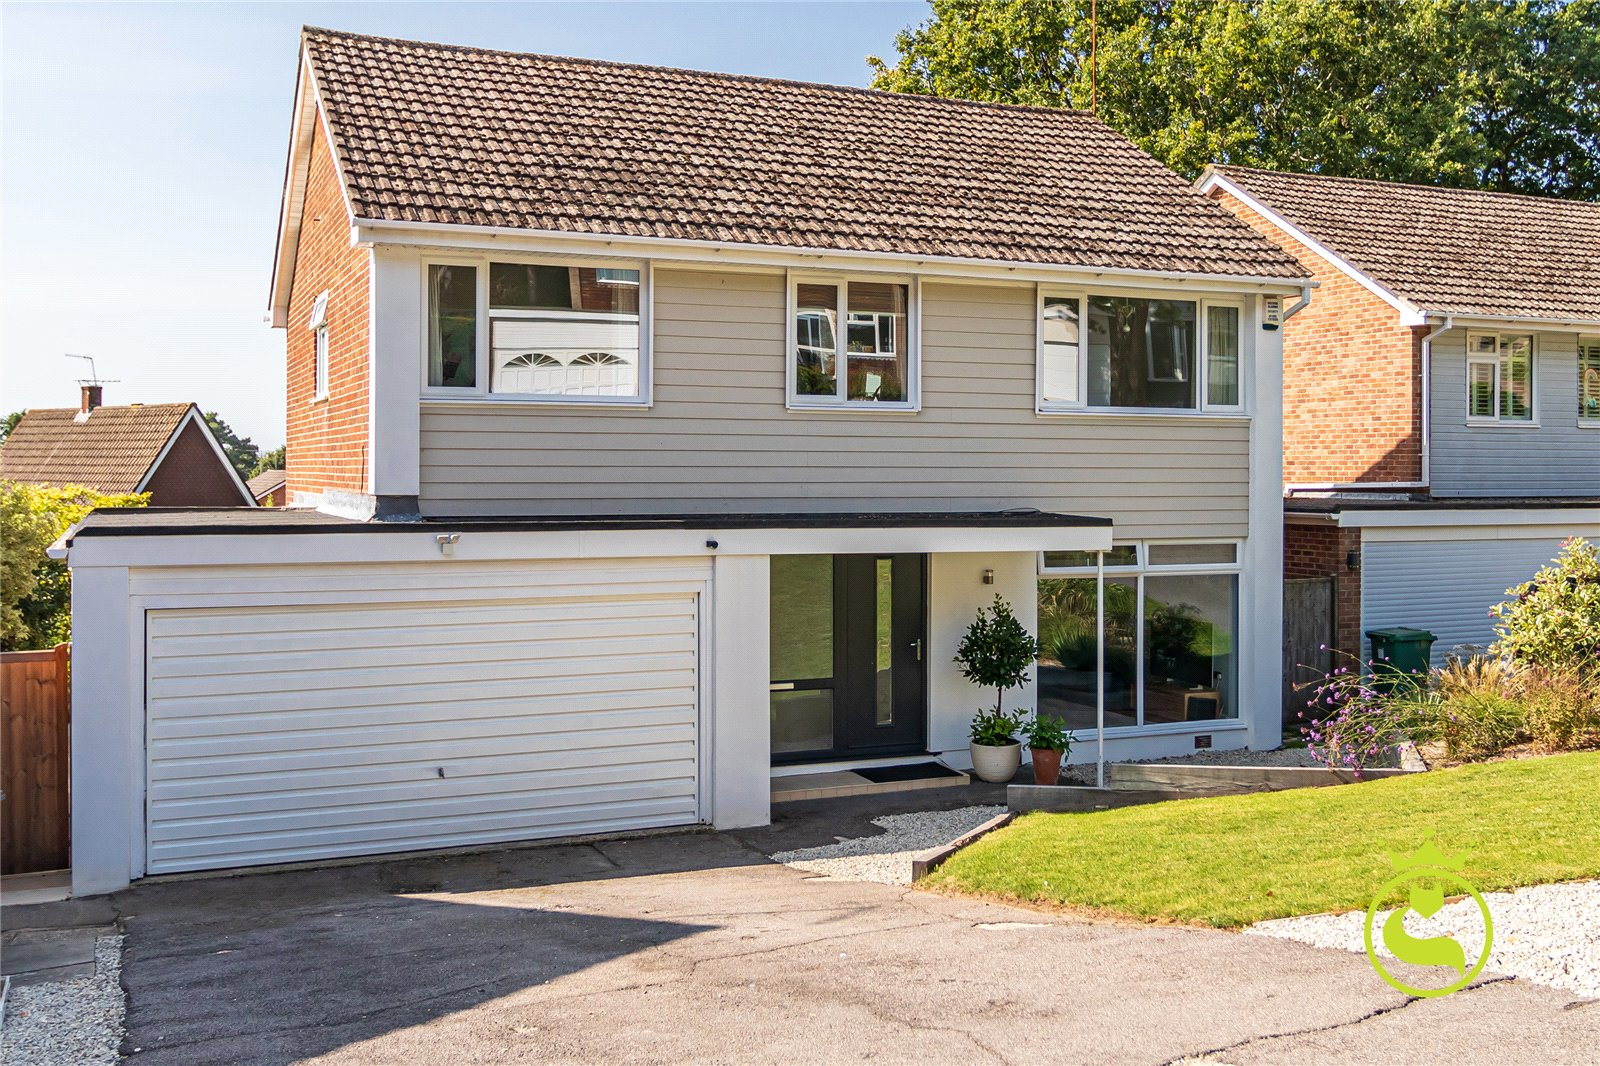 4 bed house to rent in Felton Road, Poole - Property Image 1